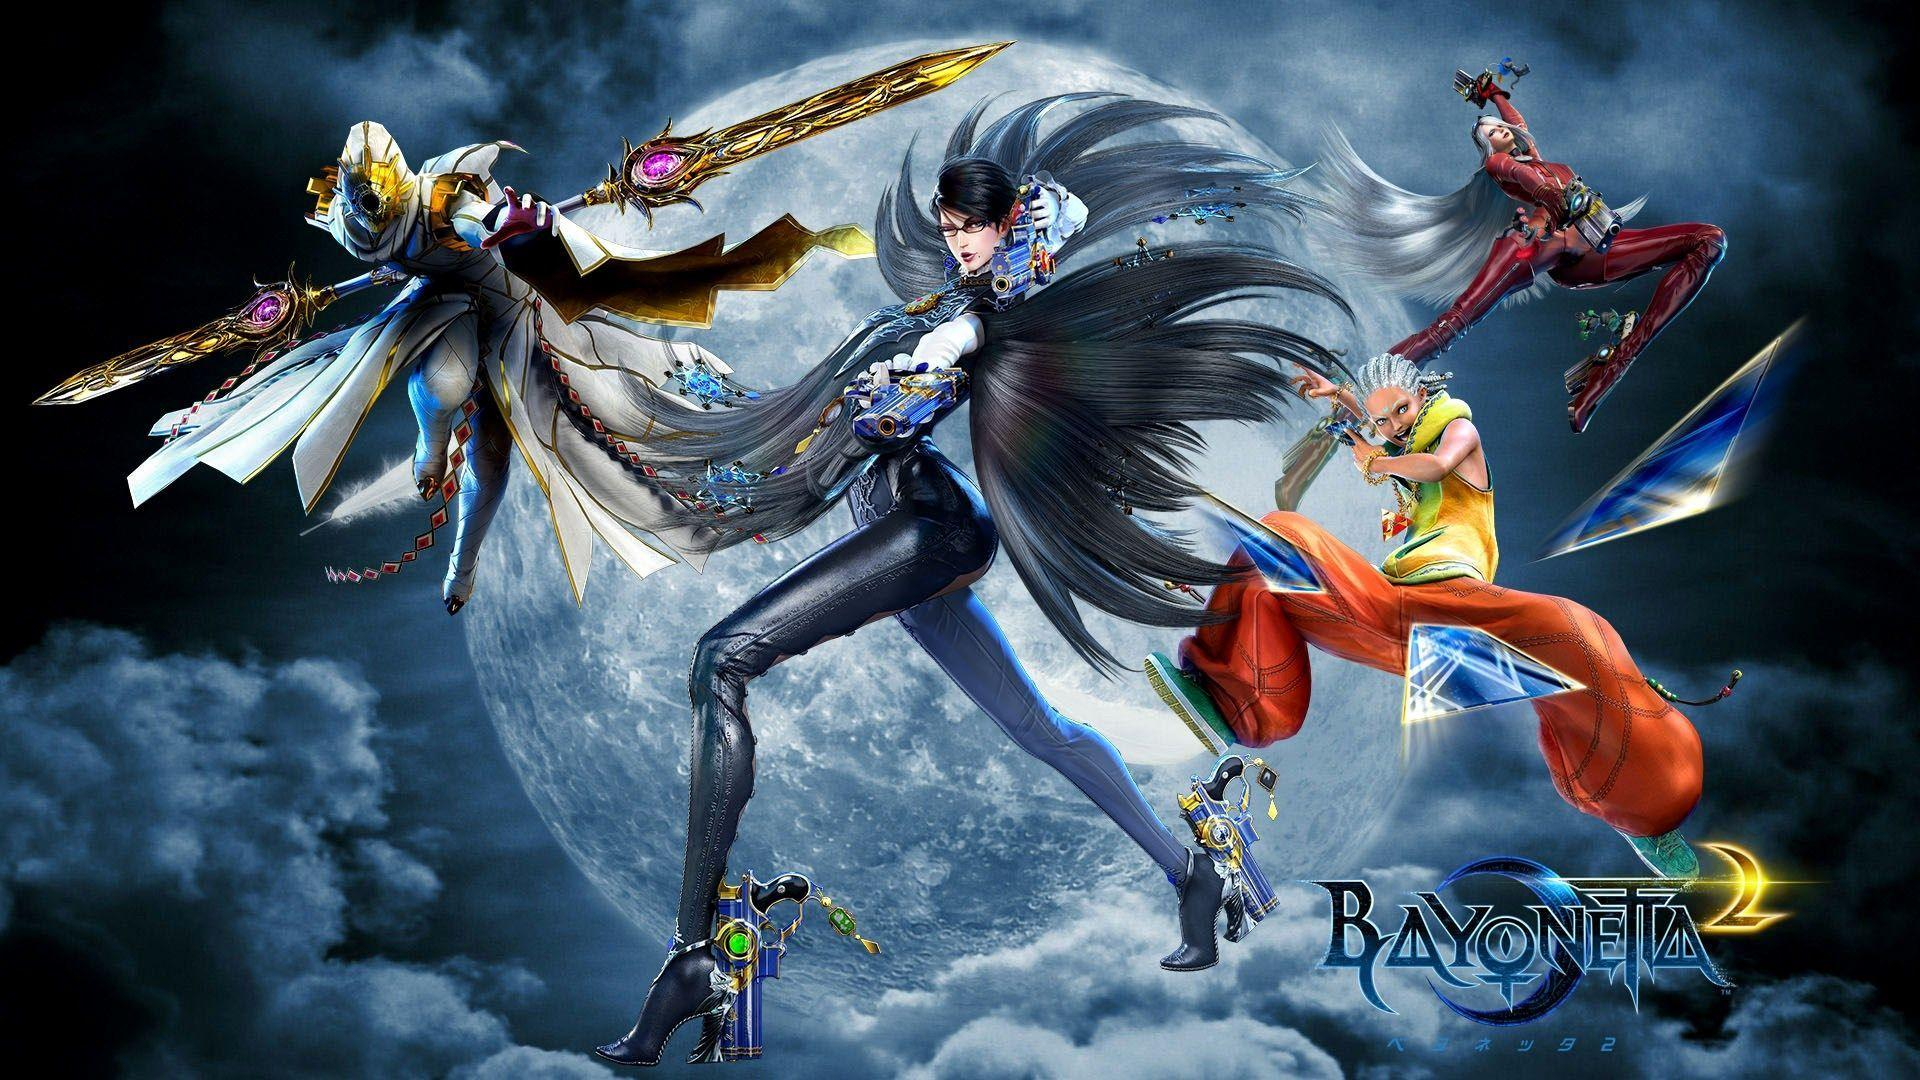 1920x1080 Bayonetta 2 game wallpapers